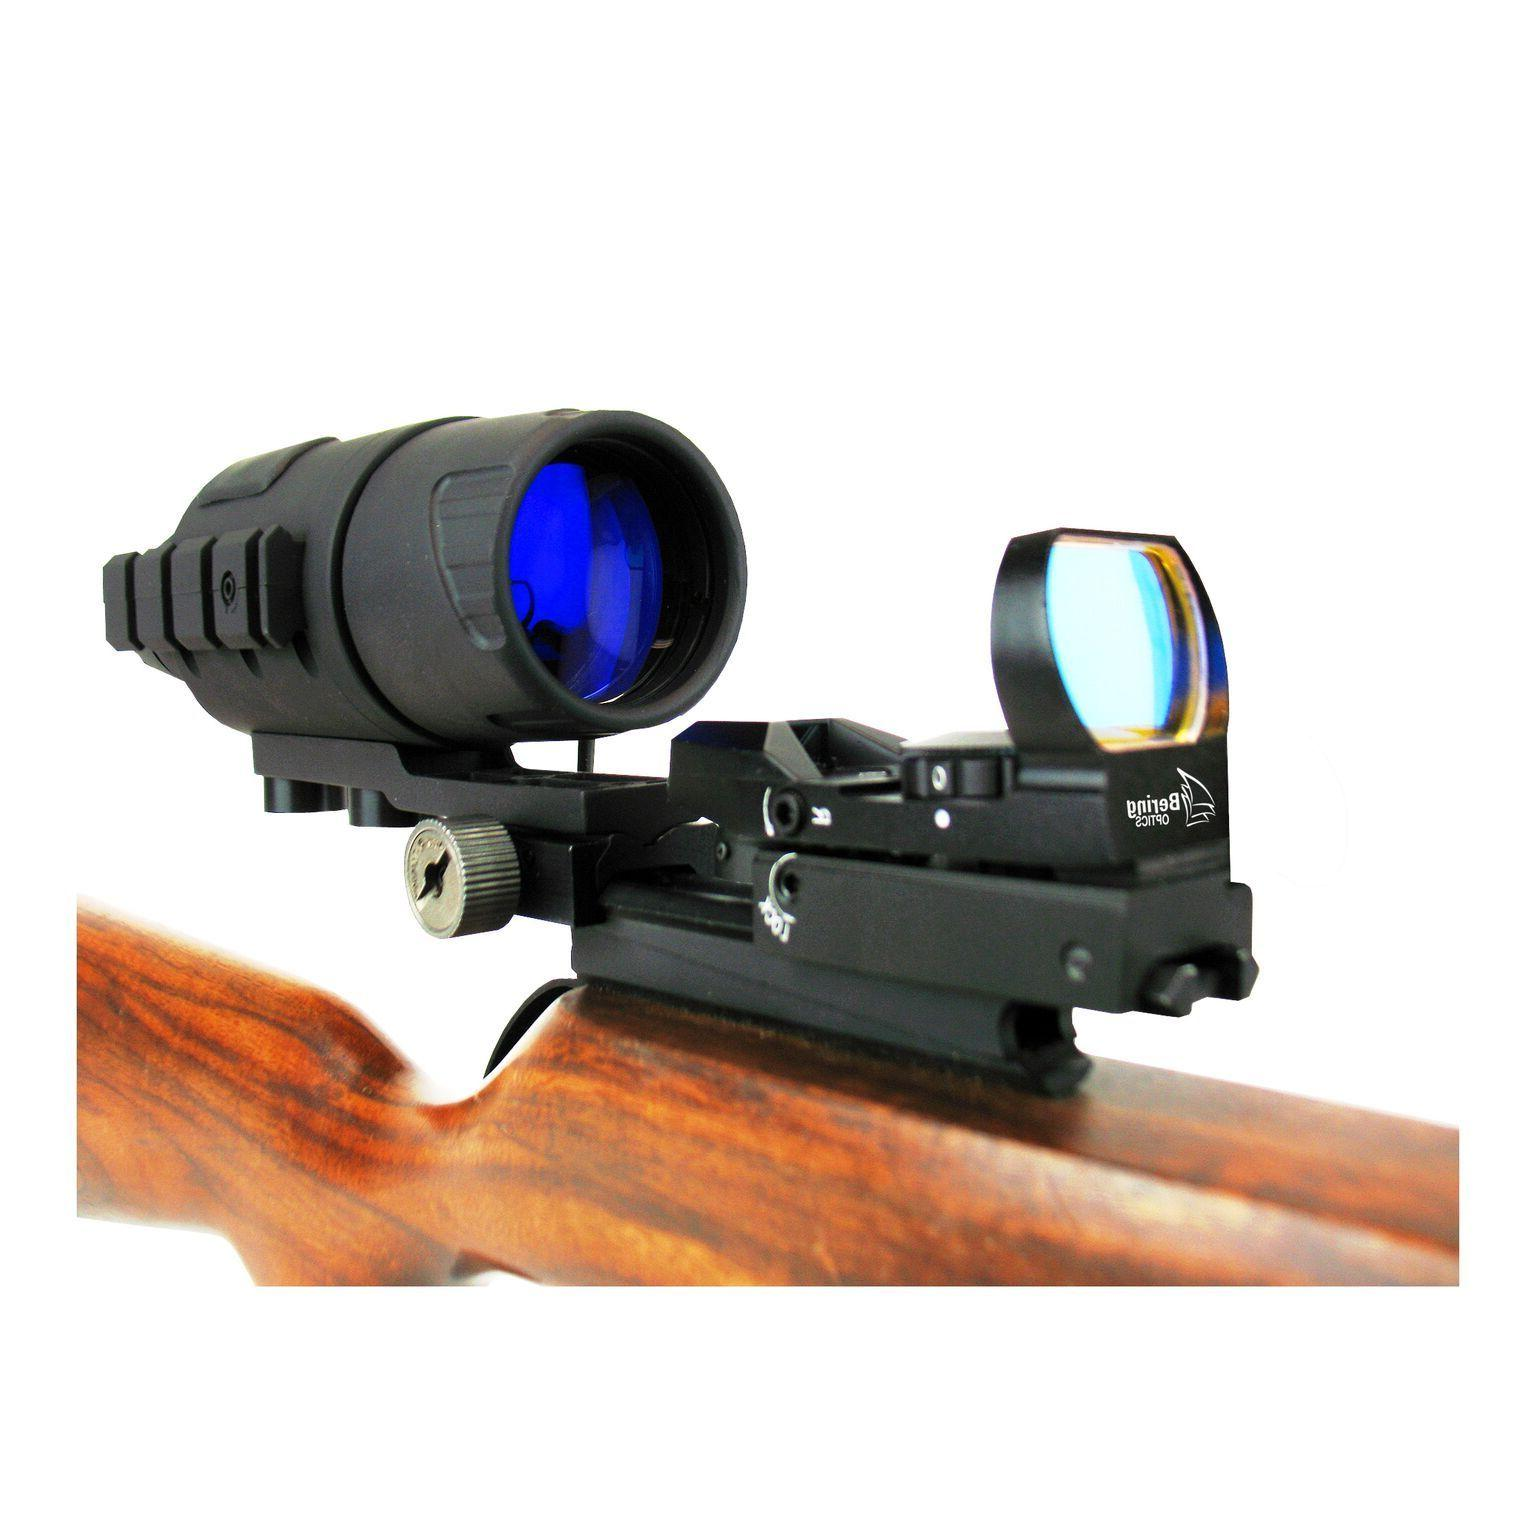 Bering Optics eXact Precision 2.6x44 Gen. I Night Vision Mon